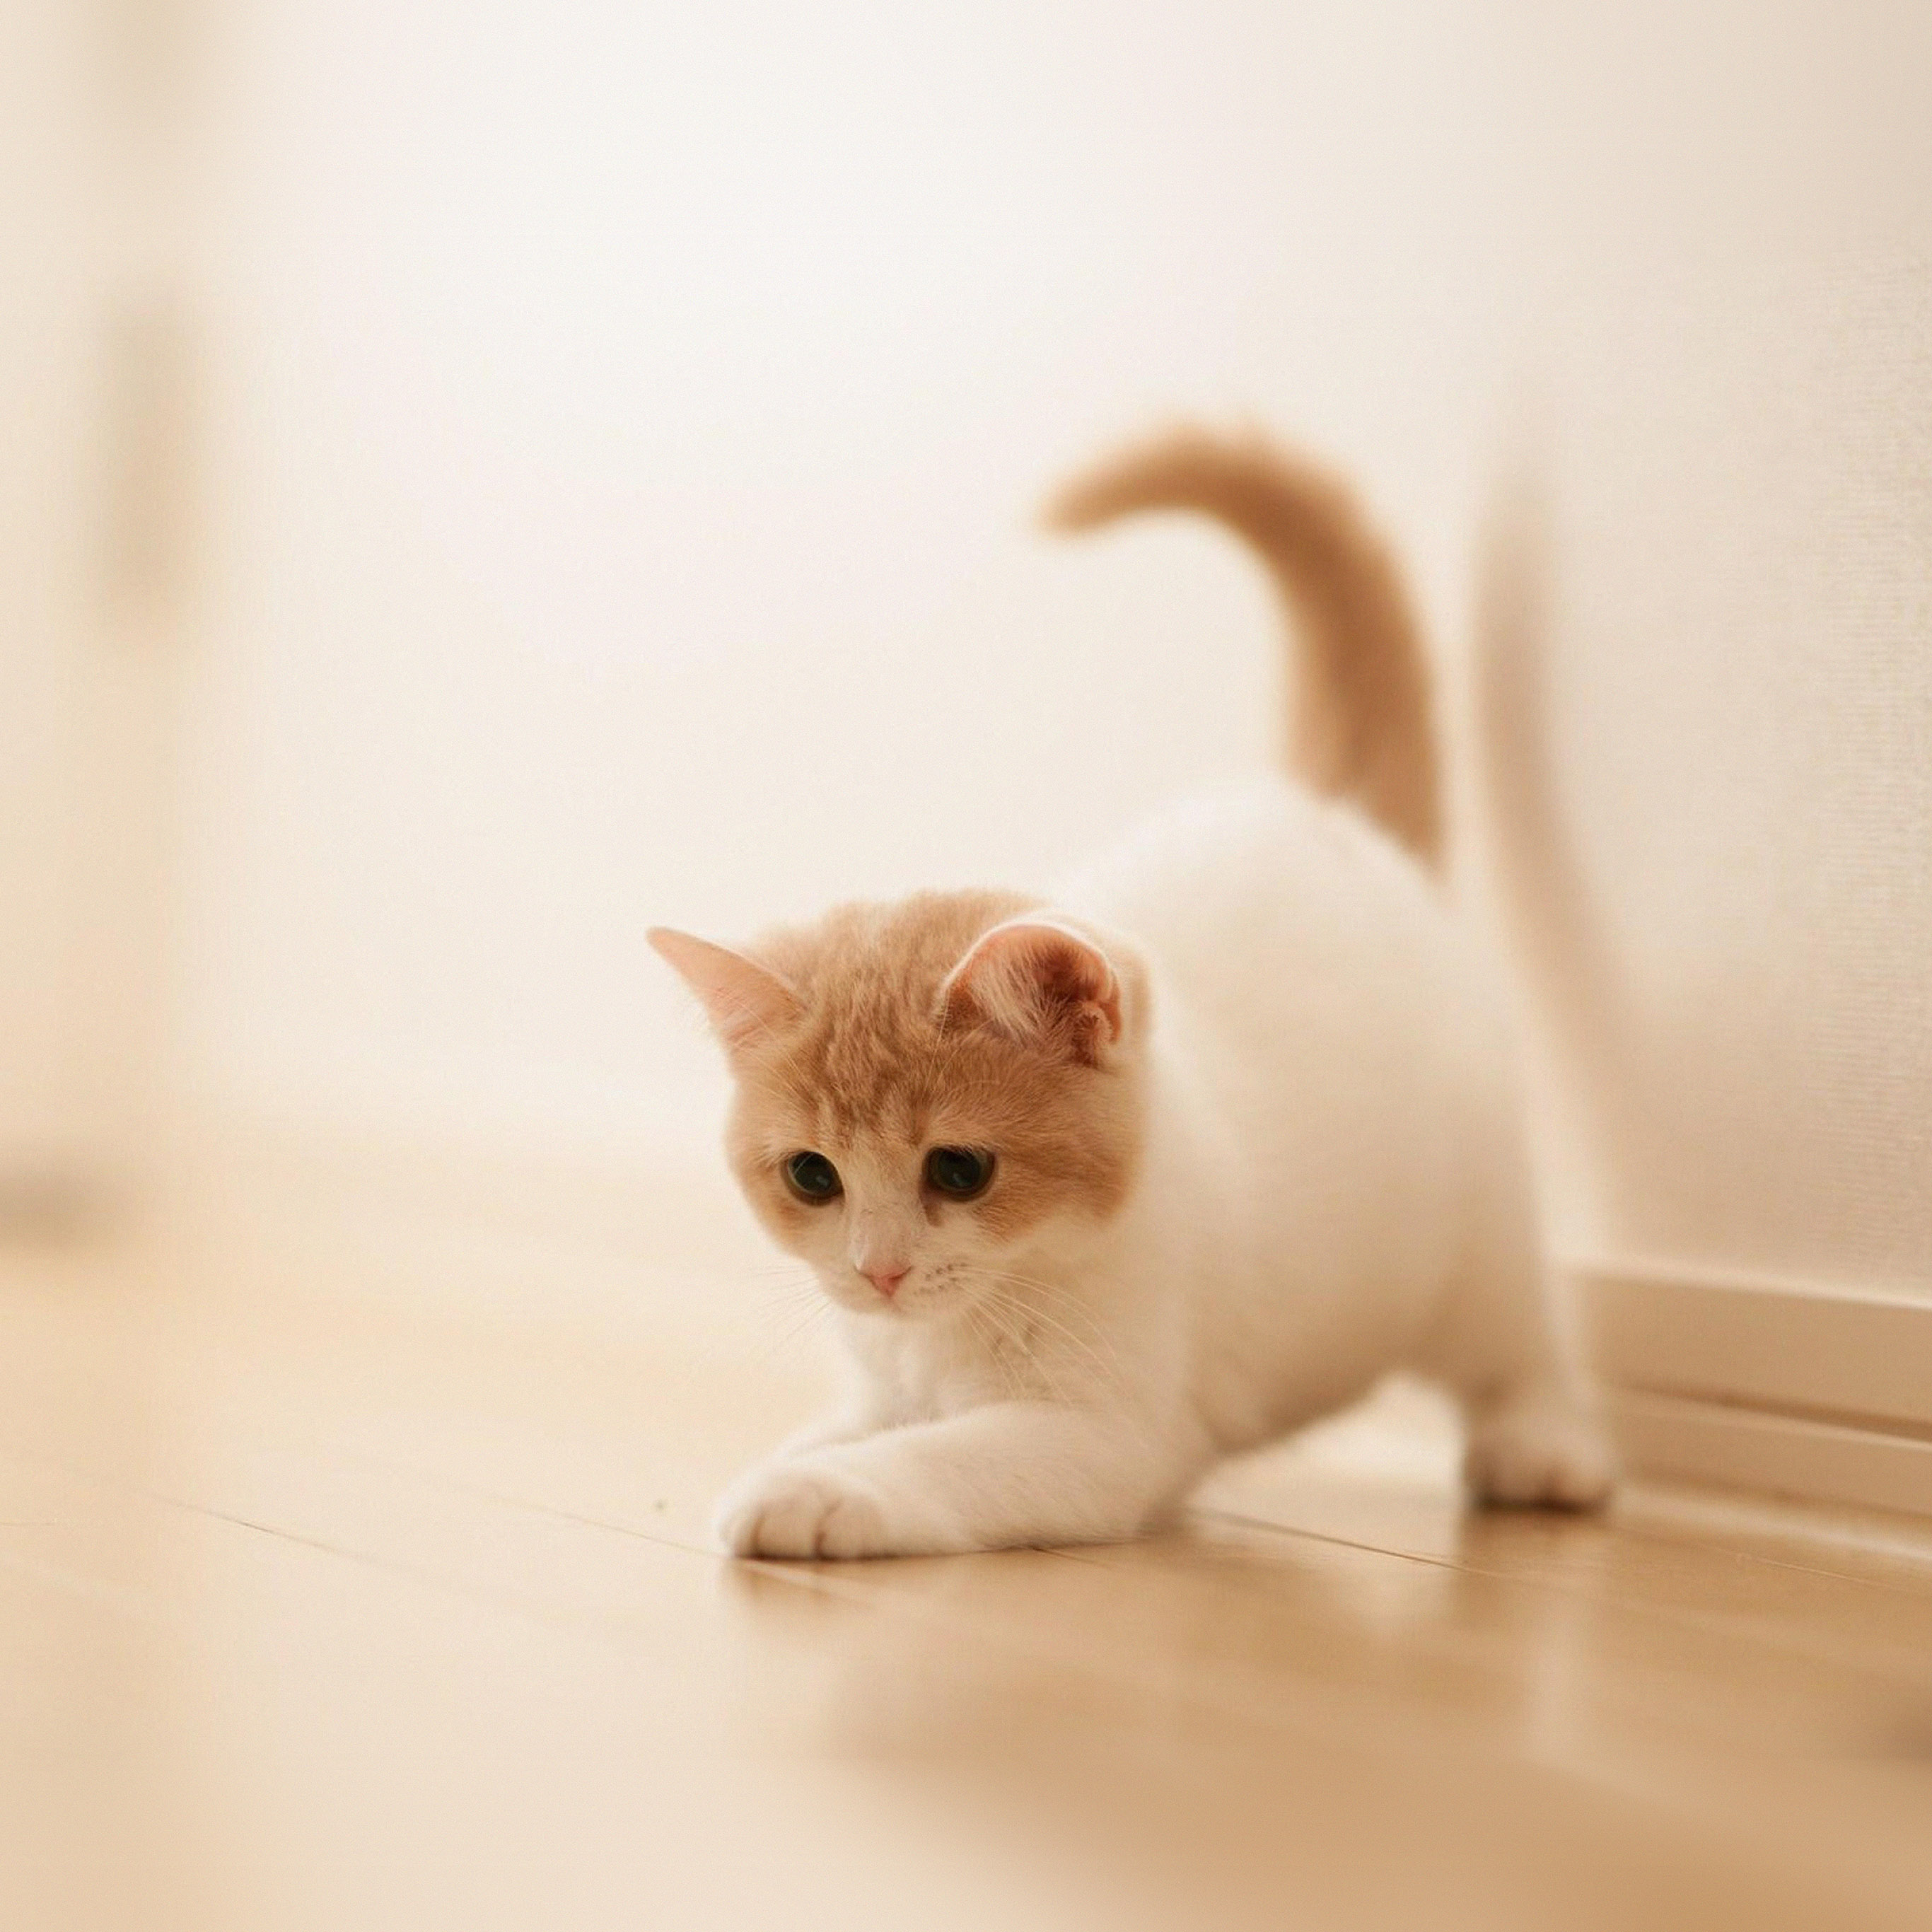 Ap58 Cute Cat Kitten Animal Wallpaper